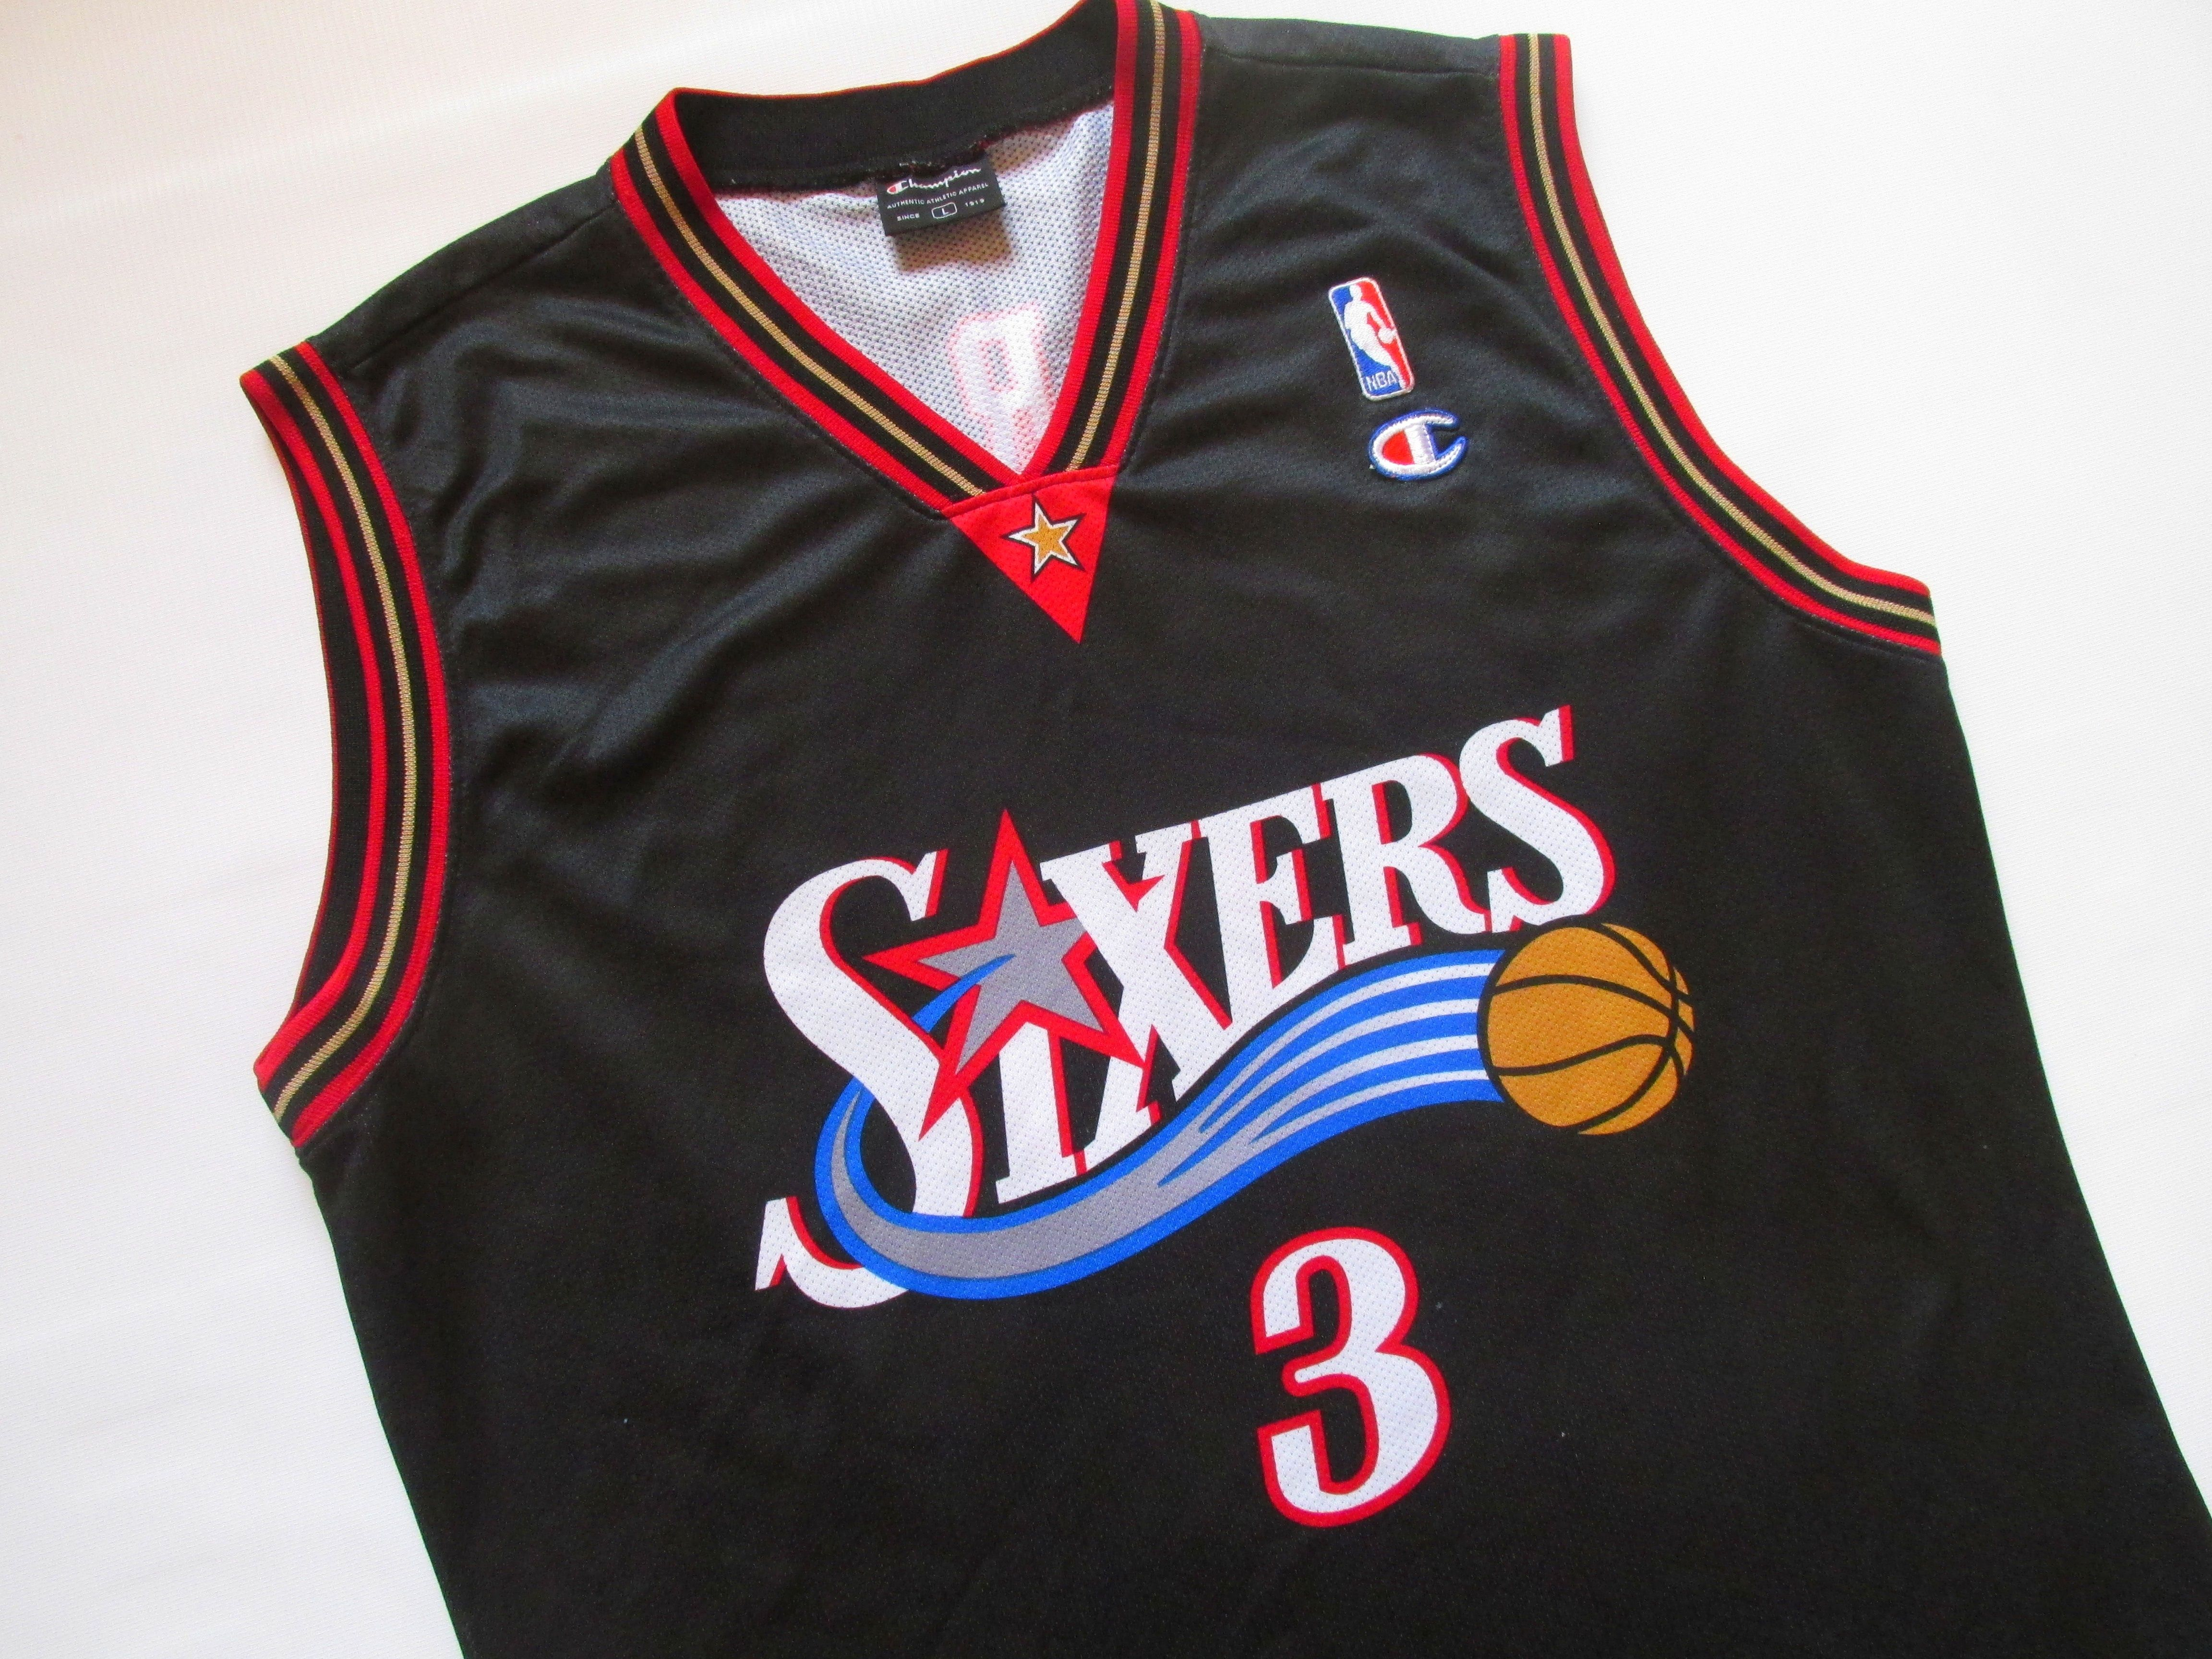 lowest price a4284 1eedf Philadelphia 76ers #3 allen iverson basketball jersey shirt ...